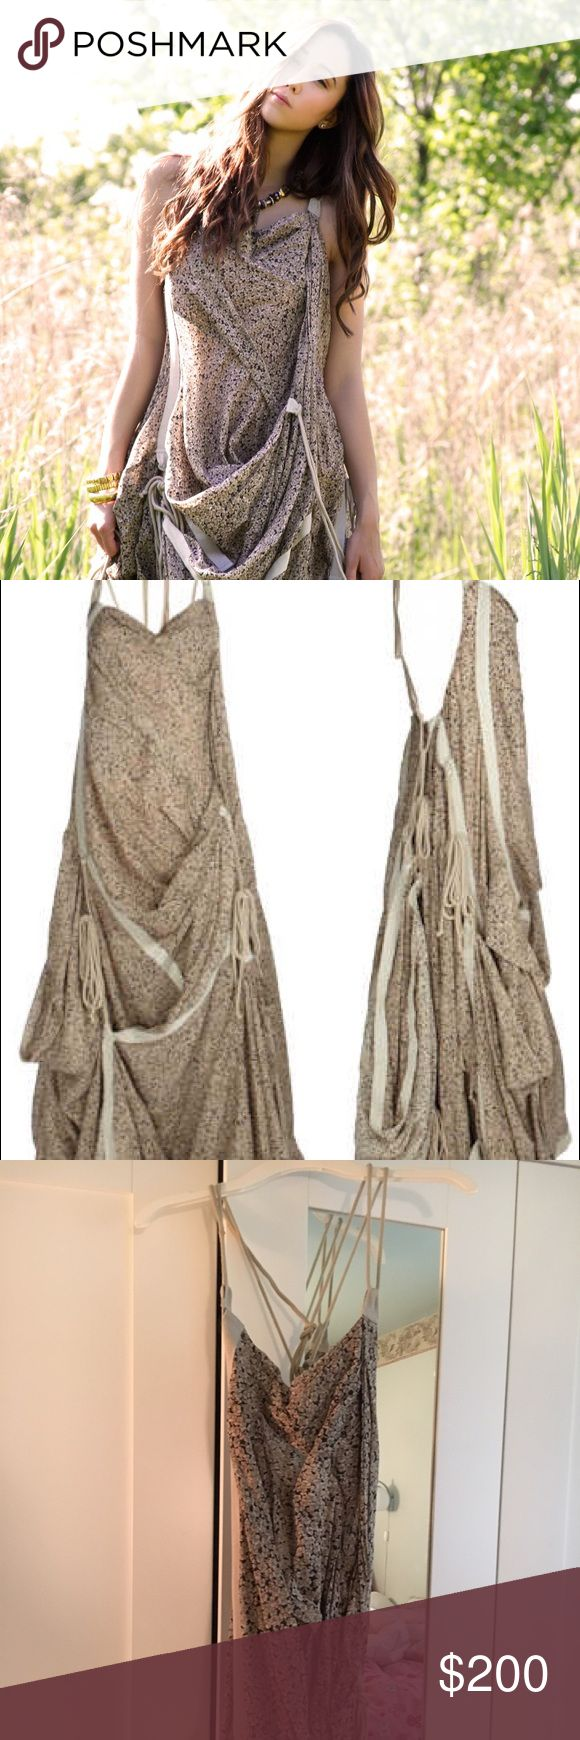 Beautiful All Saints Parachute Maxi Dress Beautiful AllSaints dress! Only worn once to prom! One size fits all! Comes with an Allsaints bag to keep the dress all together! All Saints Dresses Maxi